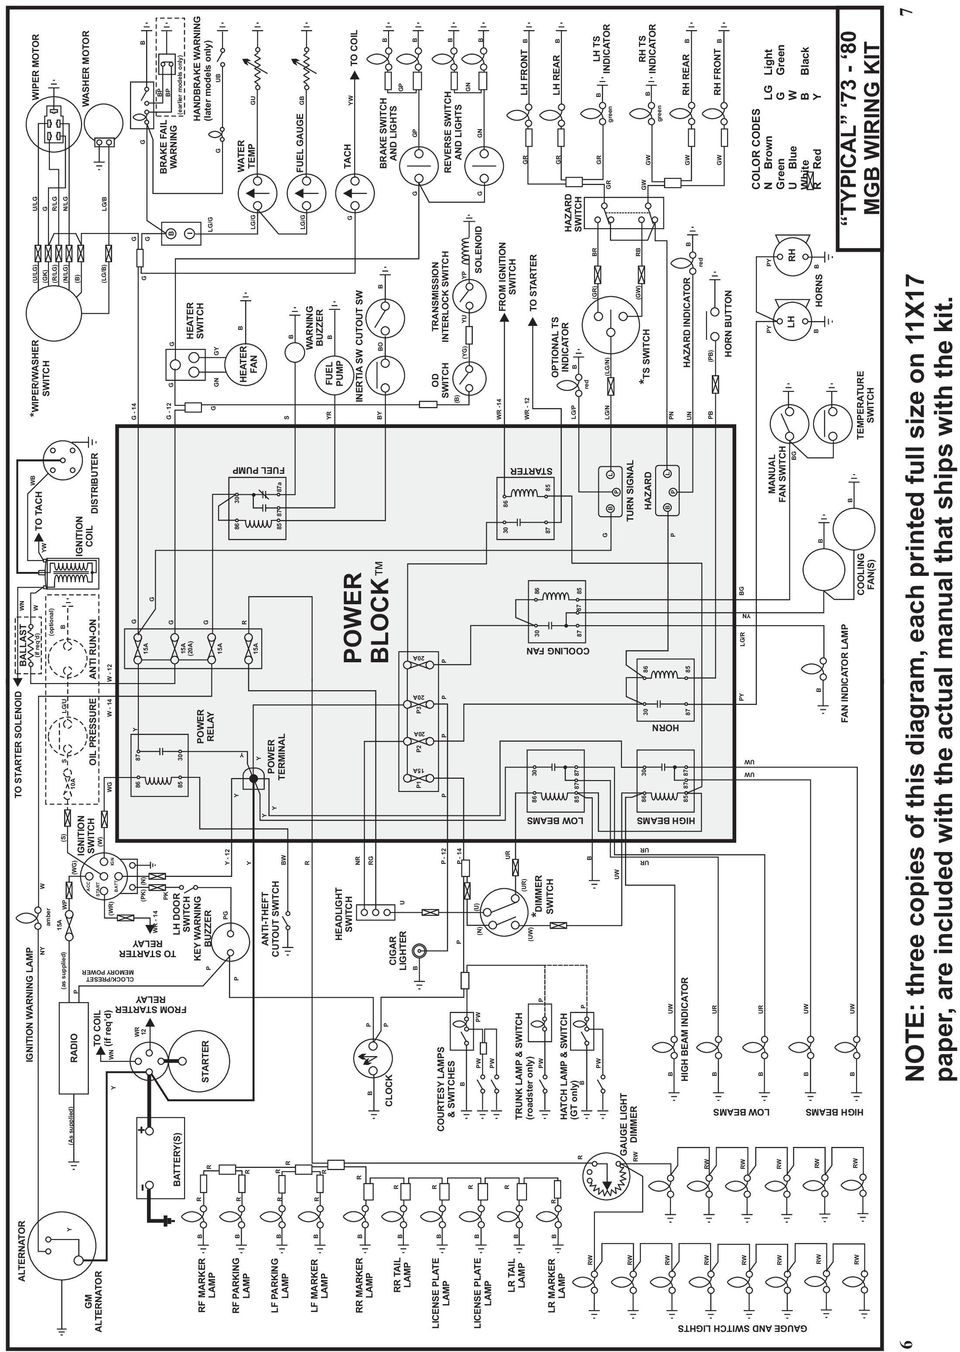 Auto Wire Installation Instructions For Custom Wiring Panel Mgb Diagram Light Hatch Lam T Only Aue Liht W Dimme N